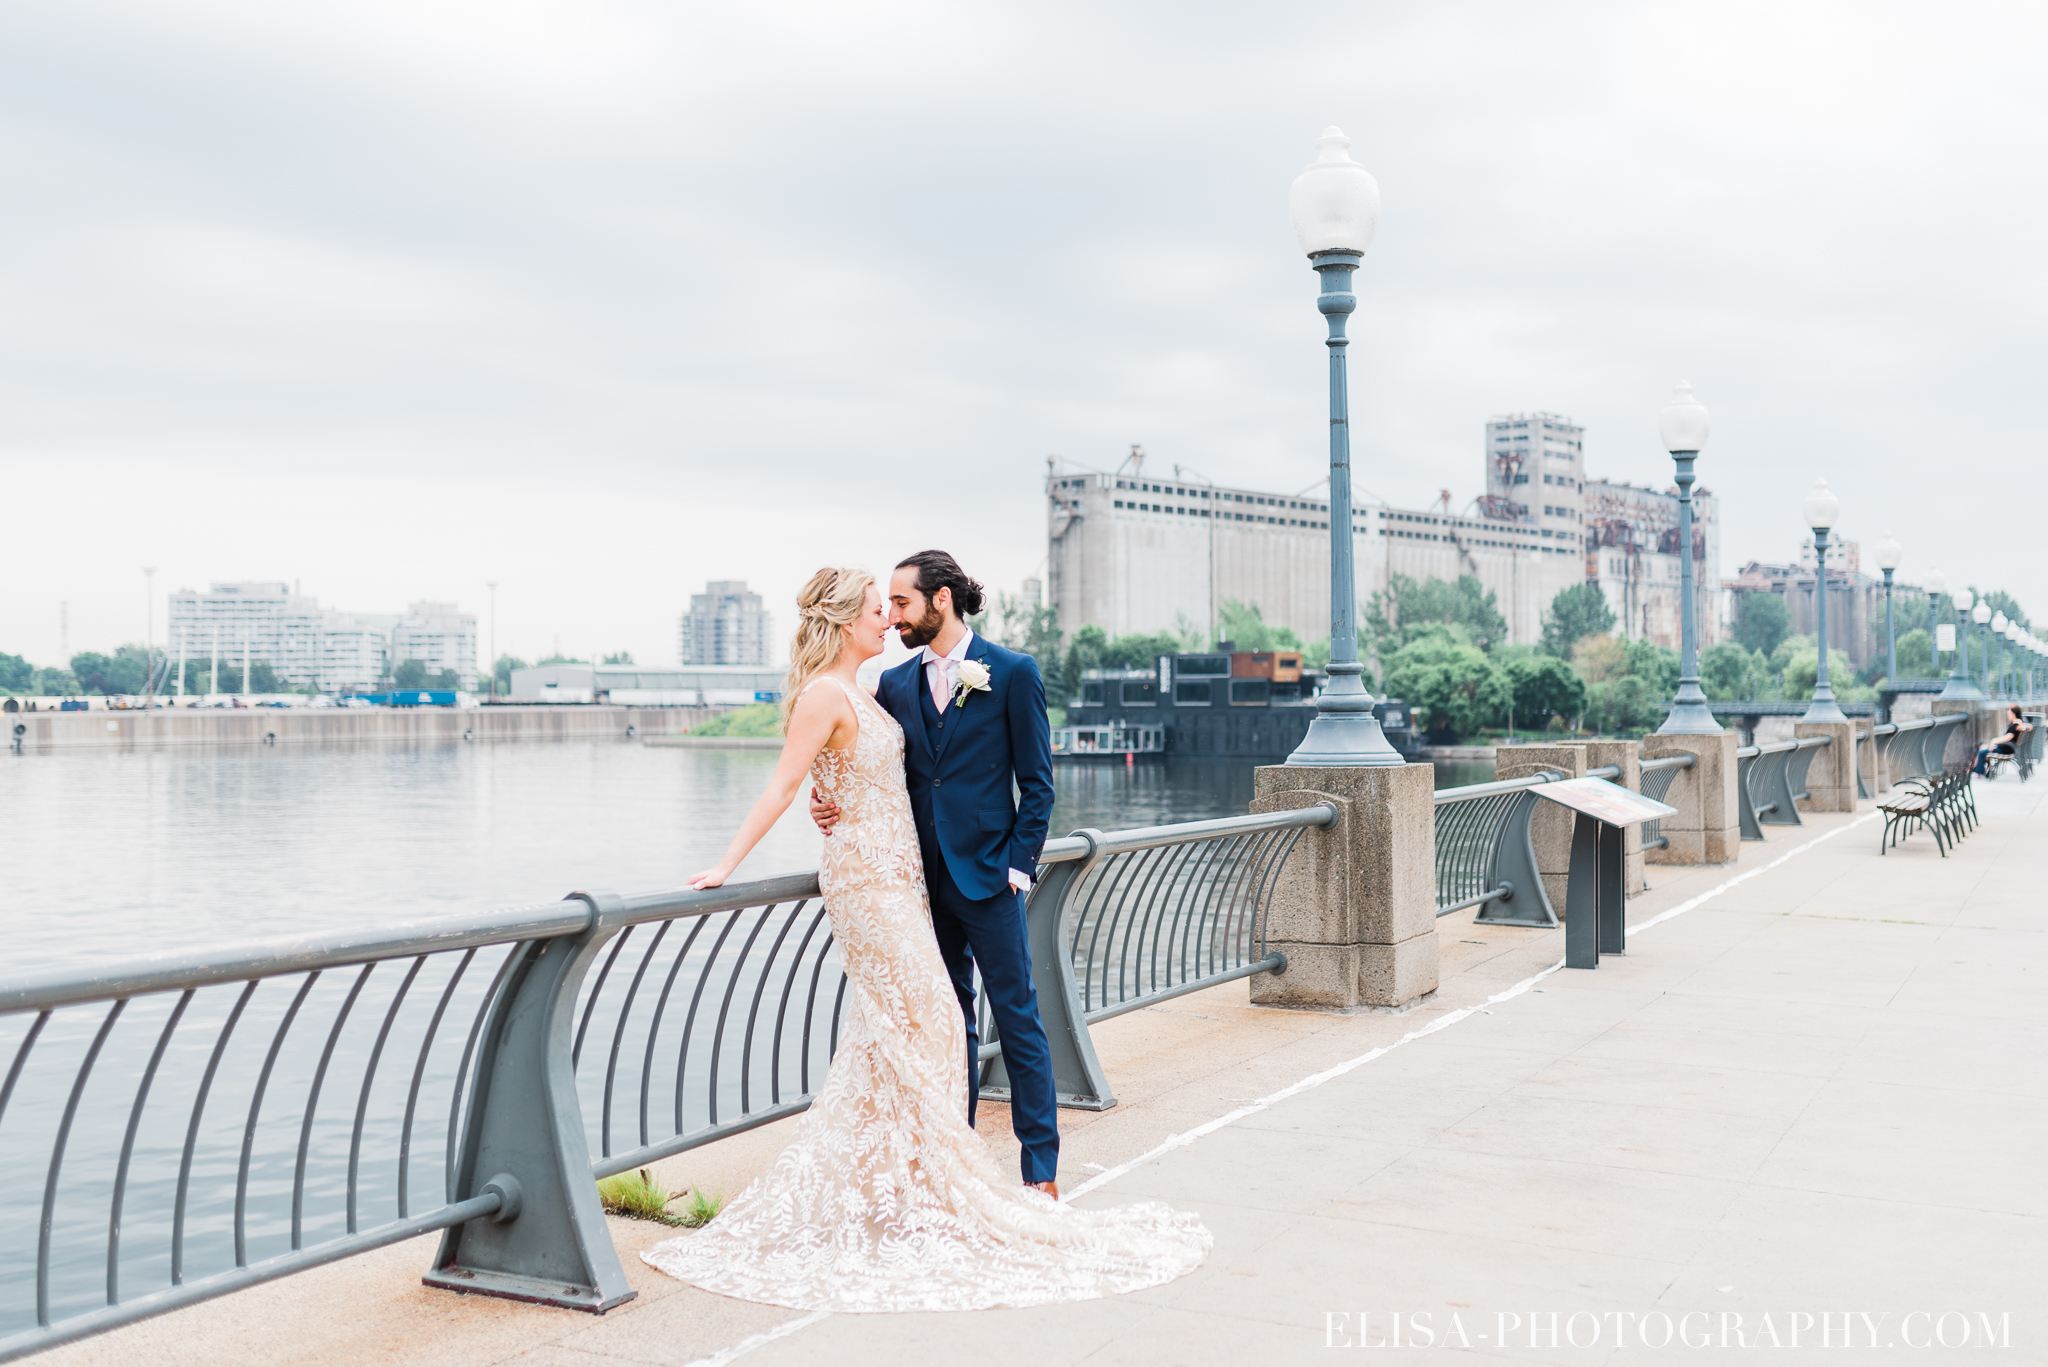 photo mariage downtown montreal urban wedding portrait elisa photographer 9270 - An elegant wedding under the marquee at the Forest and Stream Club in Montreal